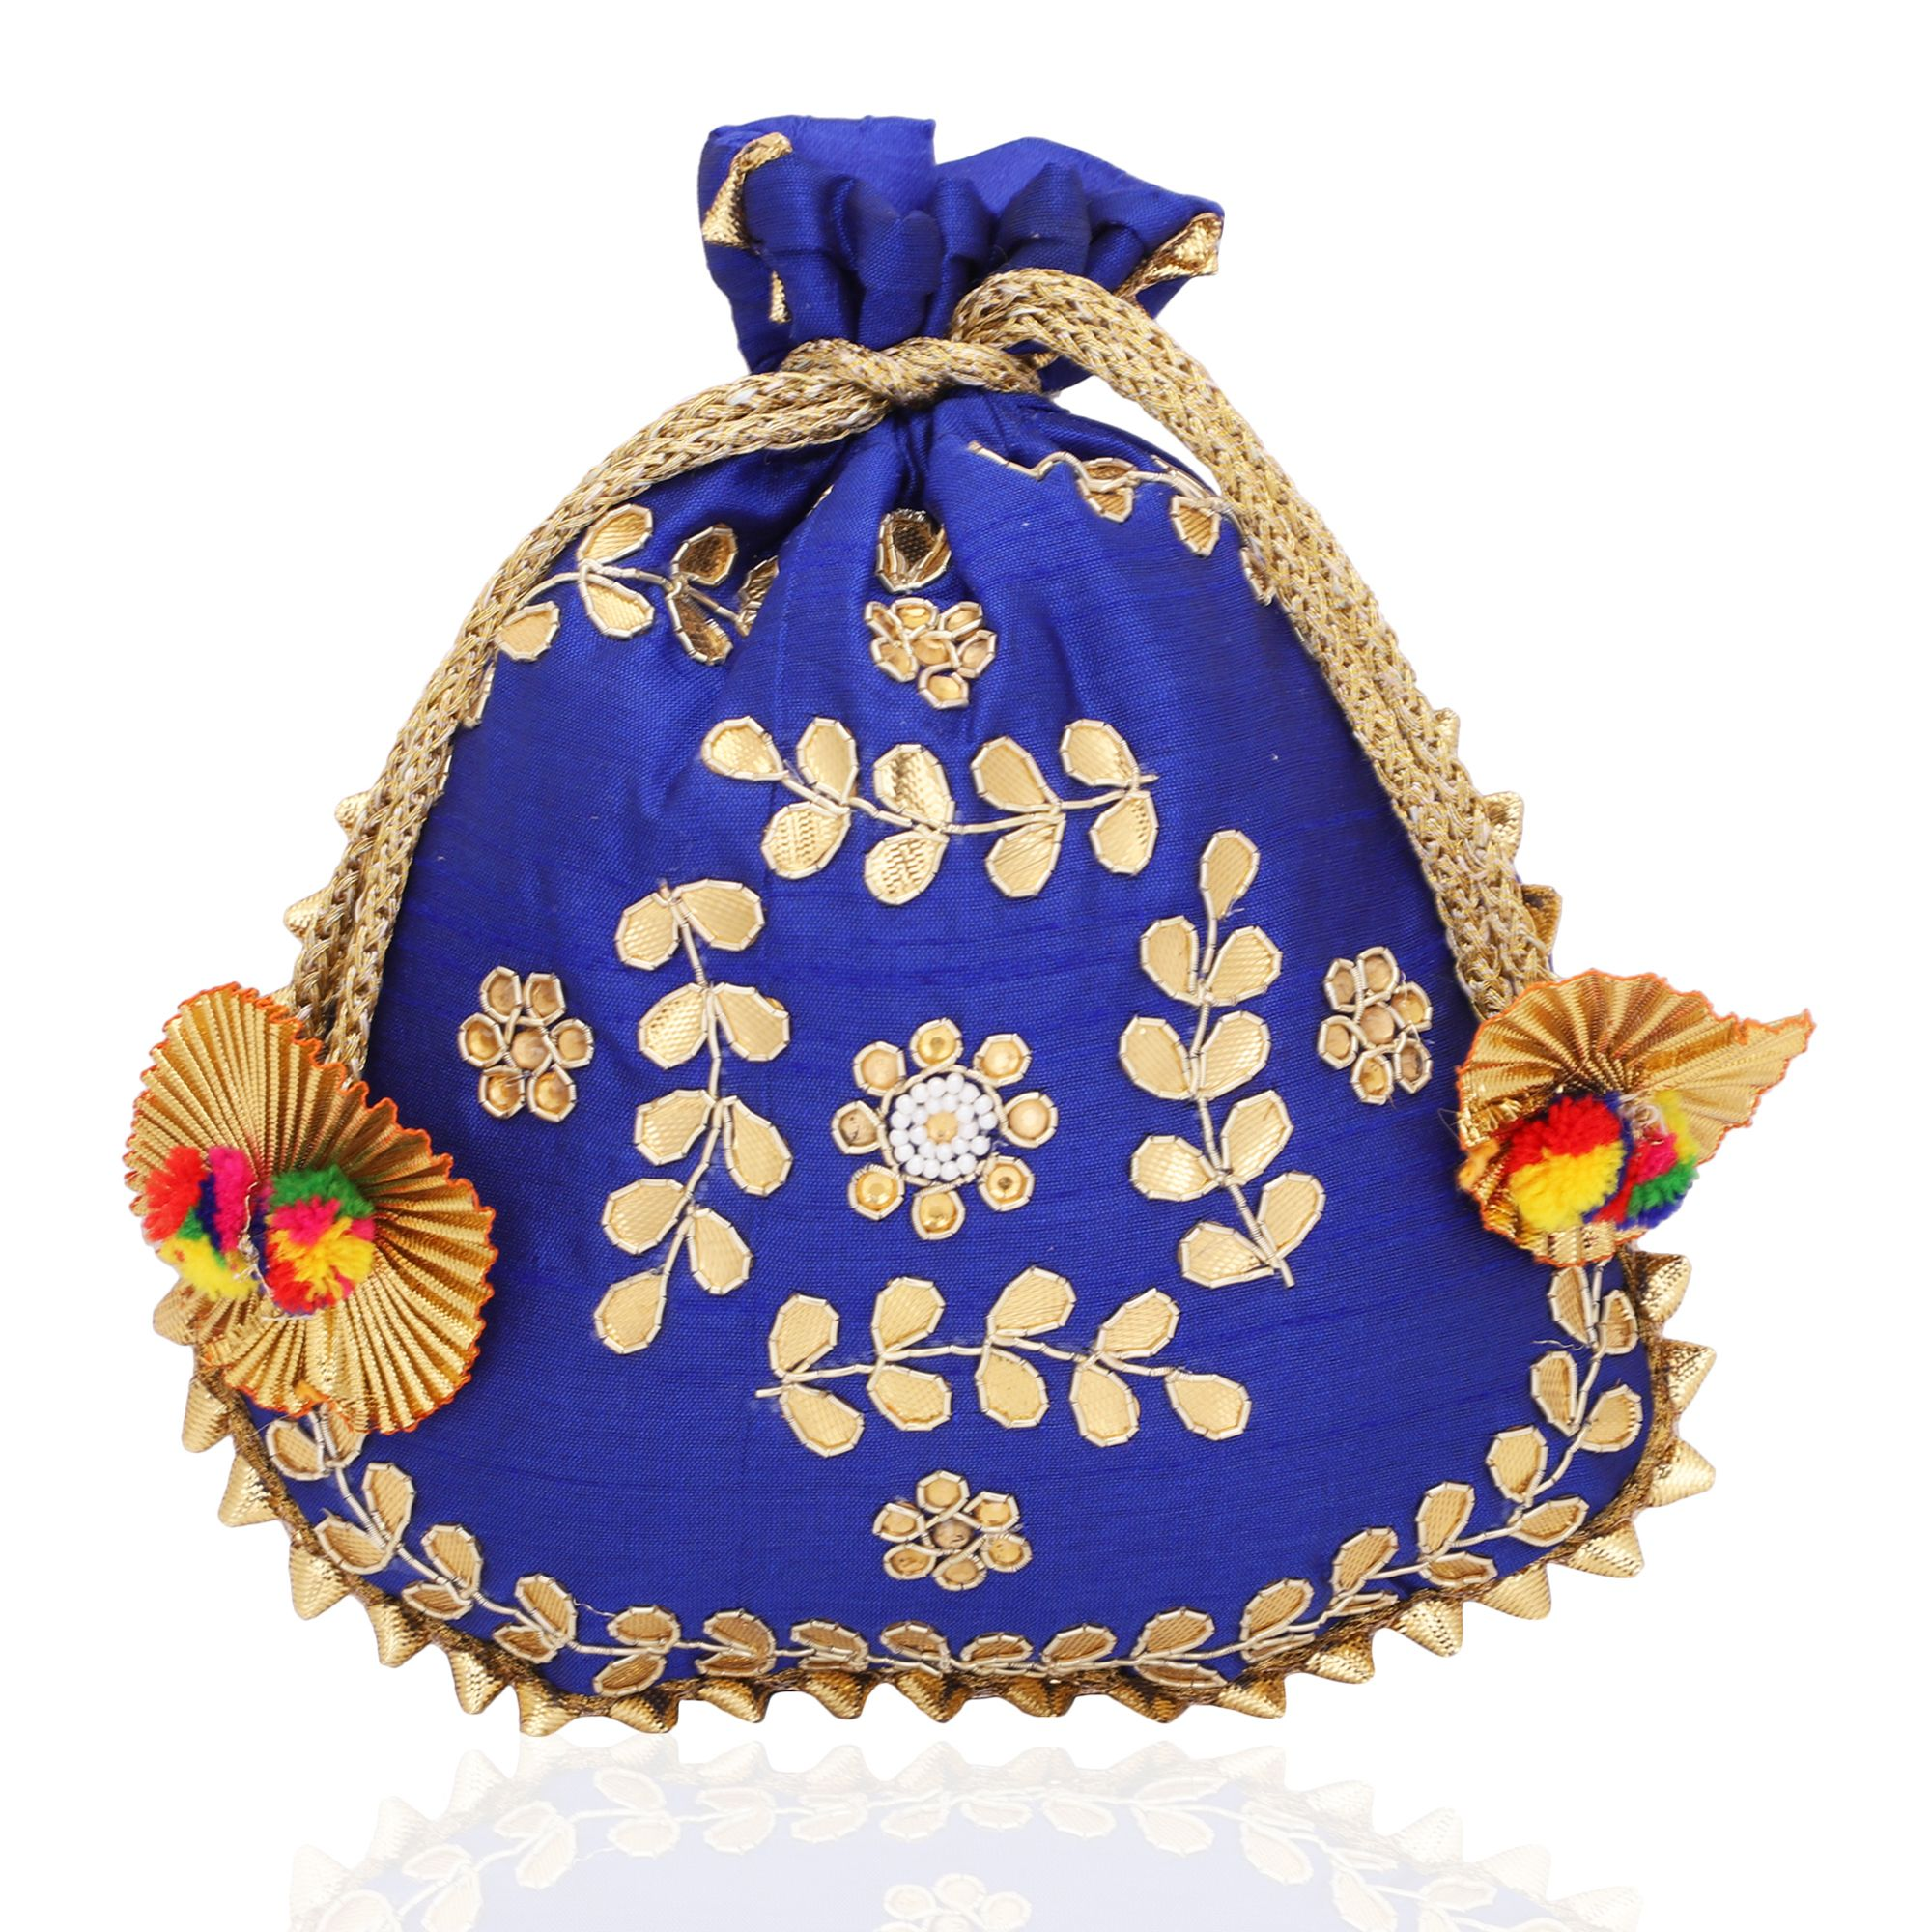 Dupion Silk Gotapatti Potli Bag in Royal Blue